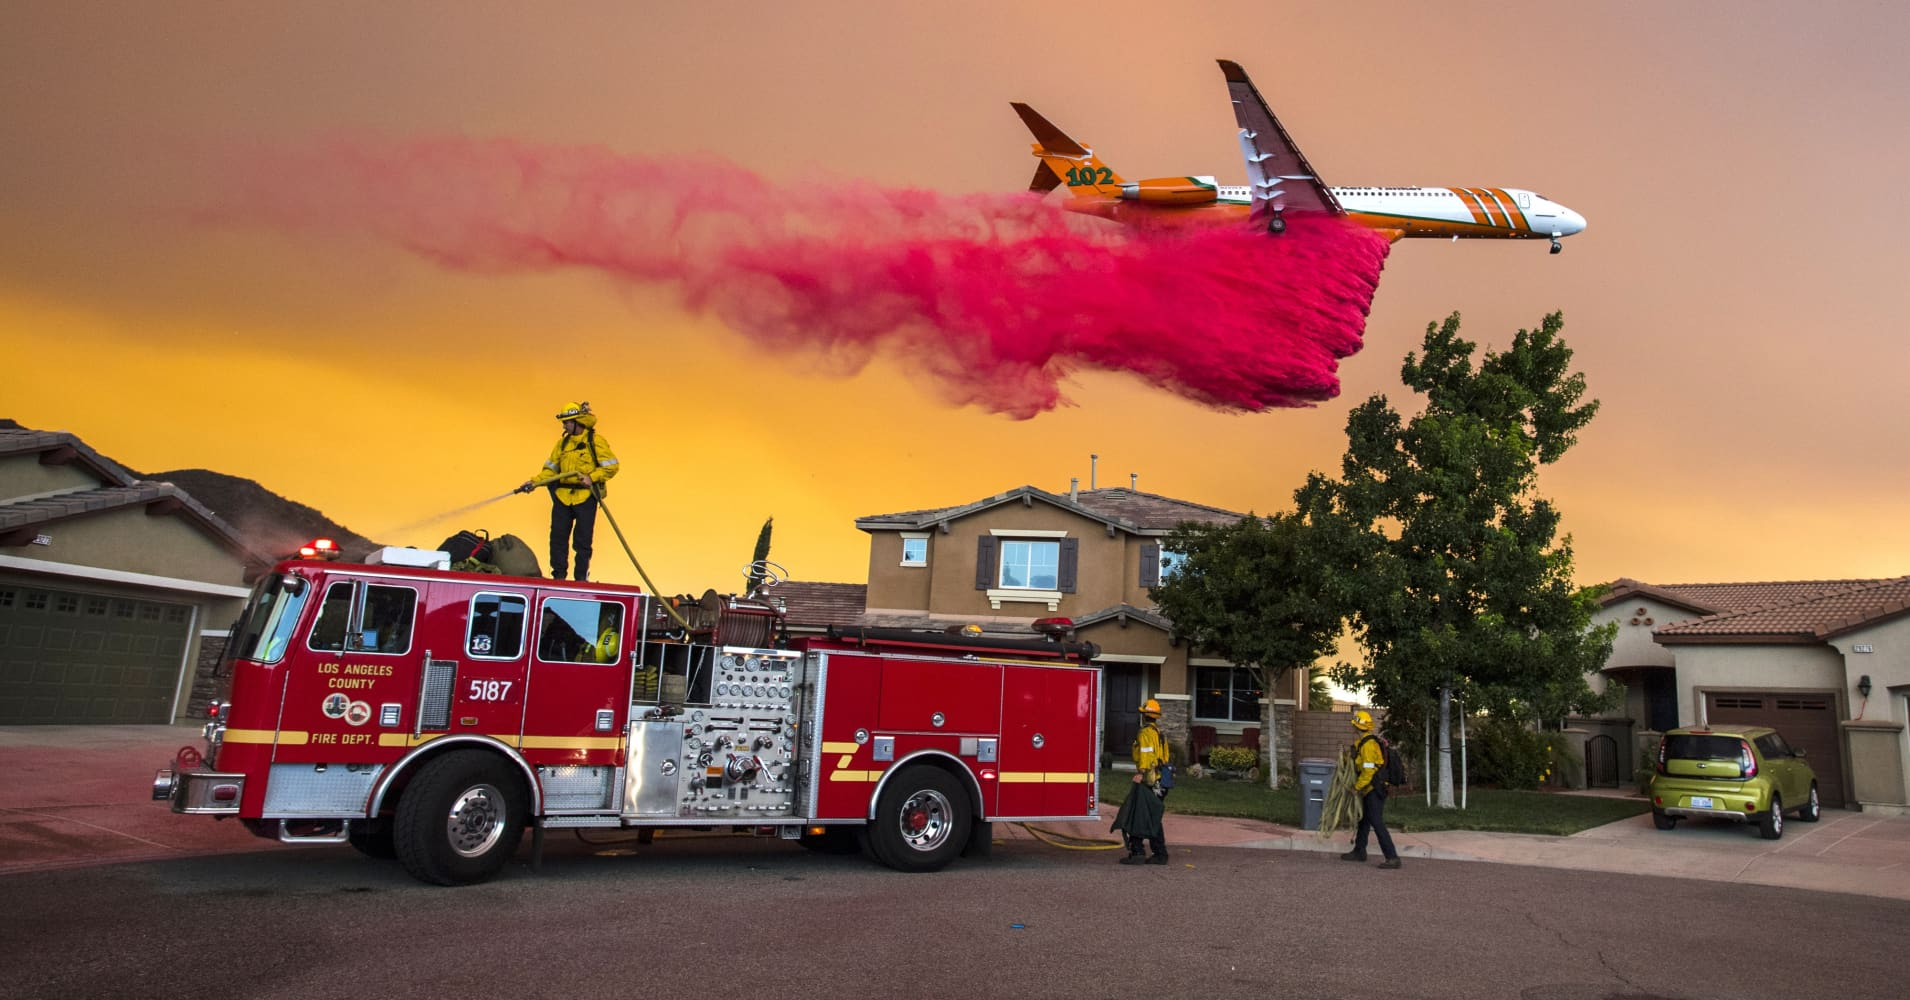 A plane drops fire retardant behind homes along McVicker Canyon Park Road in Lake Elsinore, Calif., as the Holy Fire burned near homes on Wednesday, Aug. 8, 2018.